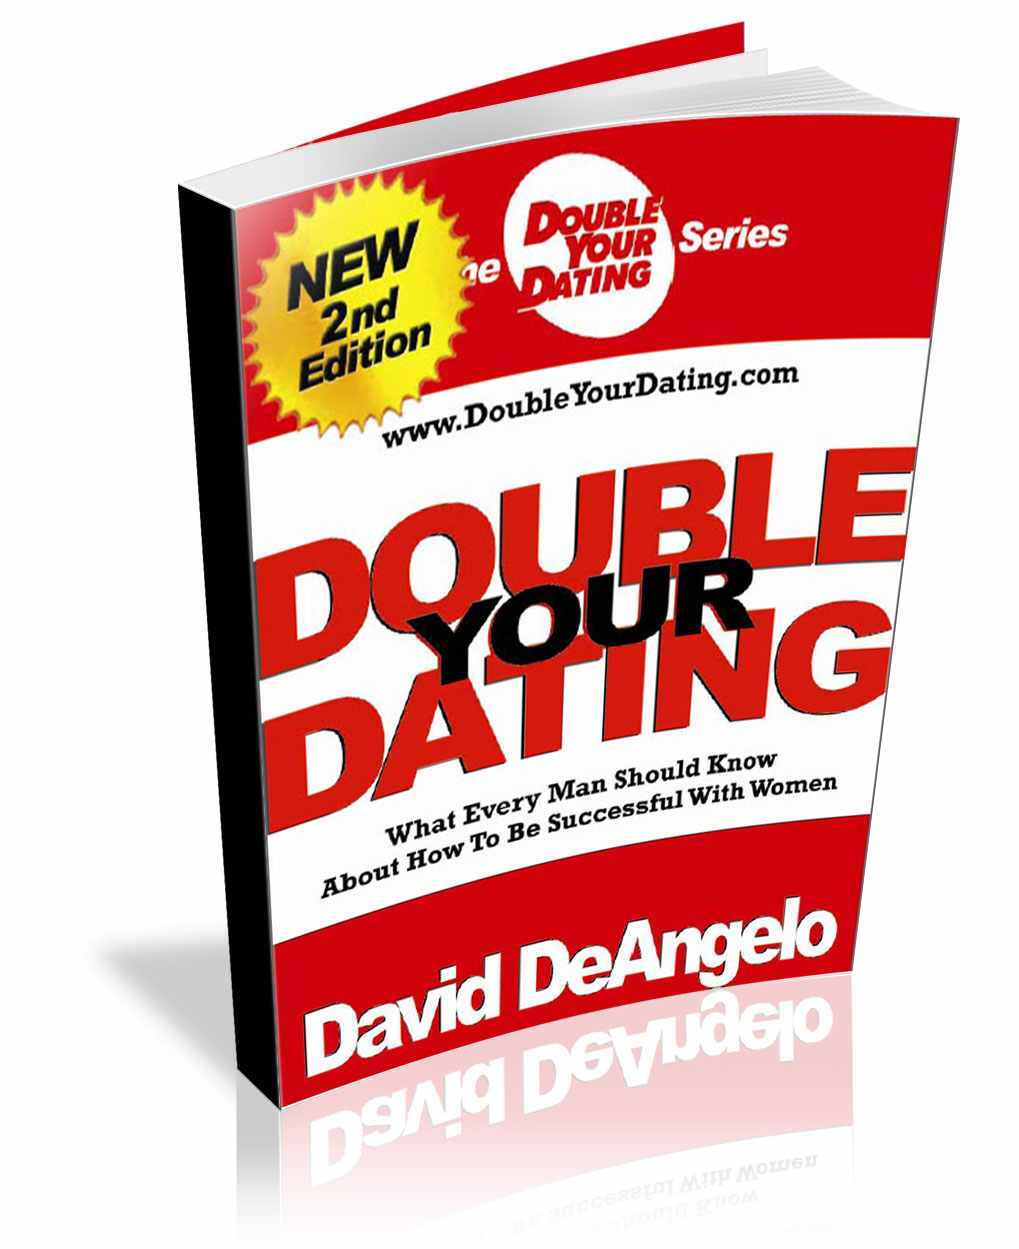 double your dating ebook free download David deangelo double your dating amazon your search david deangelo the double your dating series did not match any productstry david deangelo ebook download.